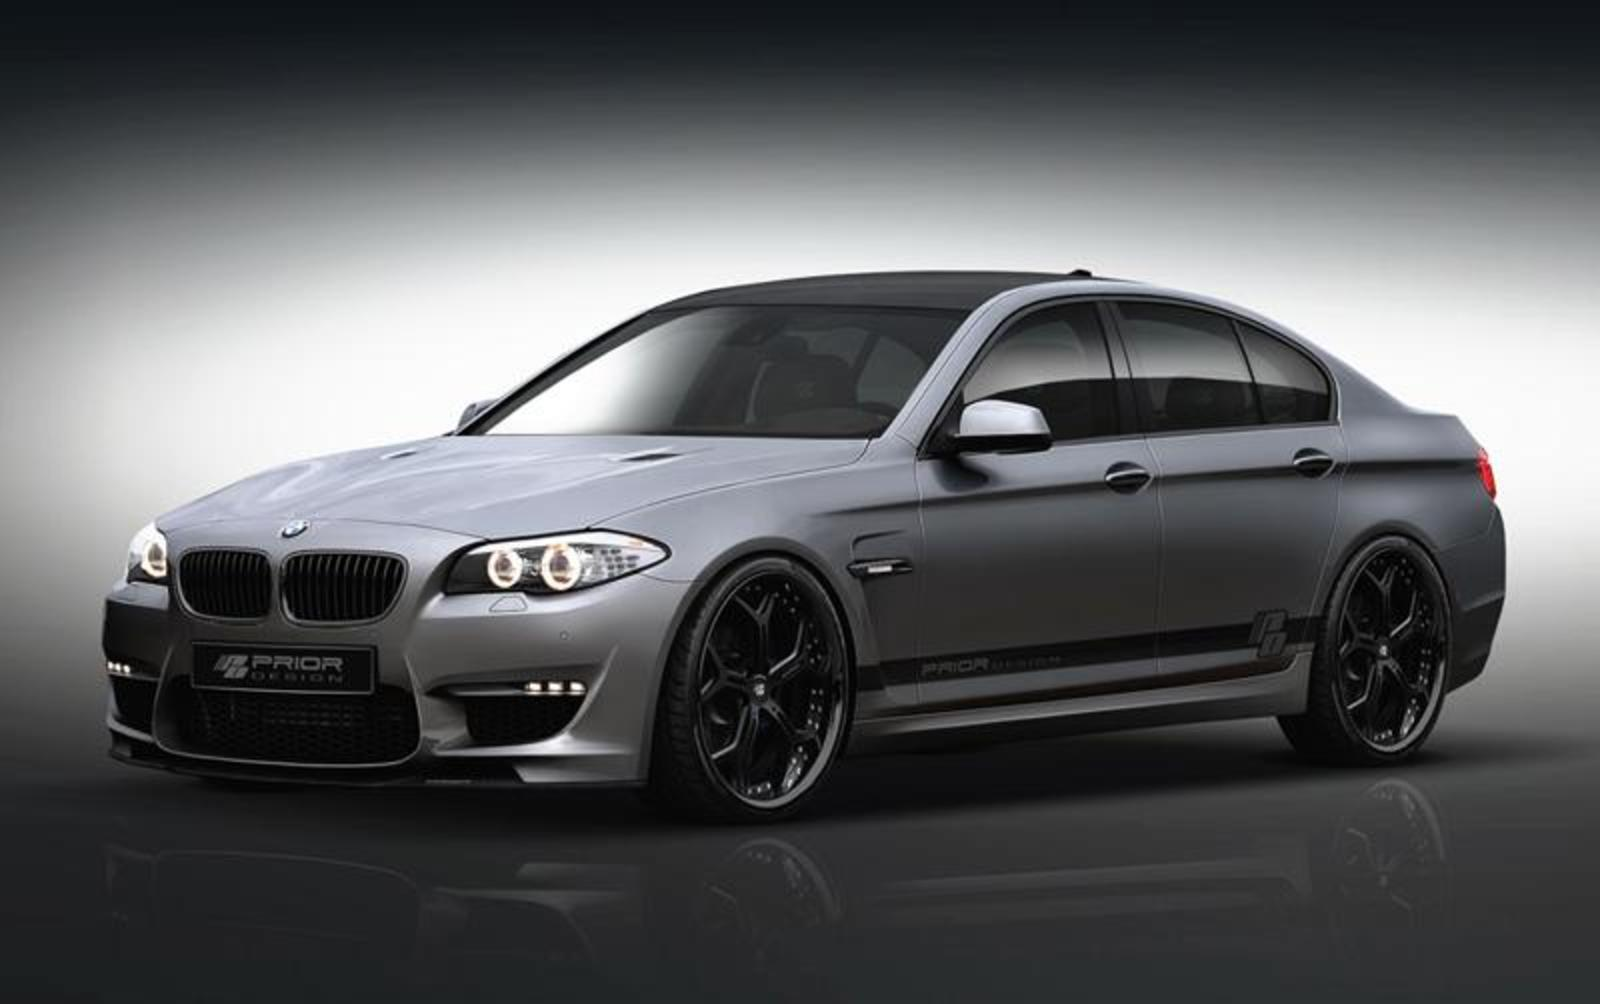 2012 bmw m5 f10 by prior design review top speed. Black Bedroom Furniture Sets. Home Design Ideas